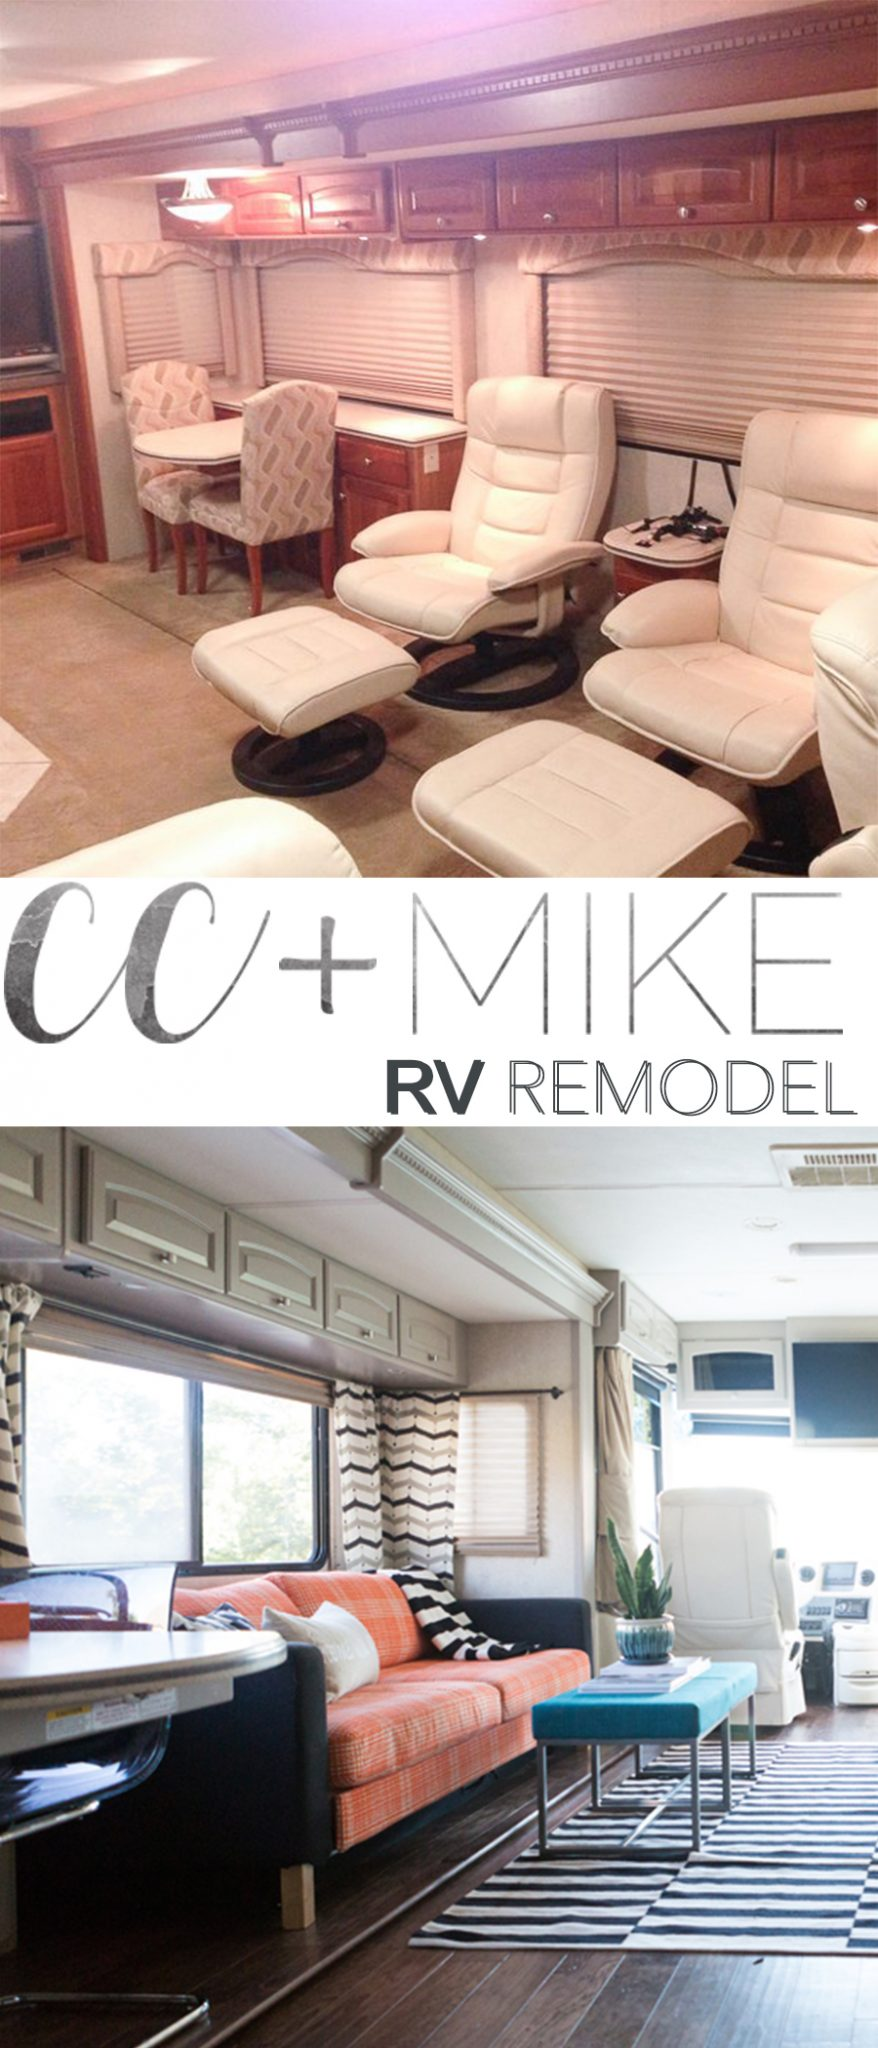 Miller RV Renovation - Before & After   cc&mike   Lifestyle Blog